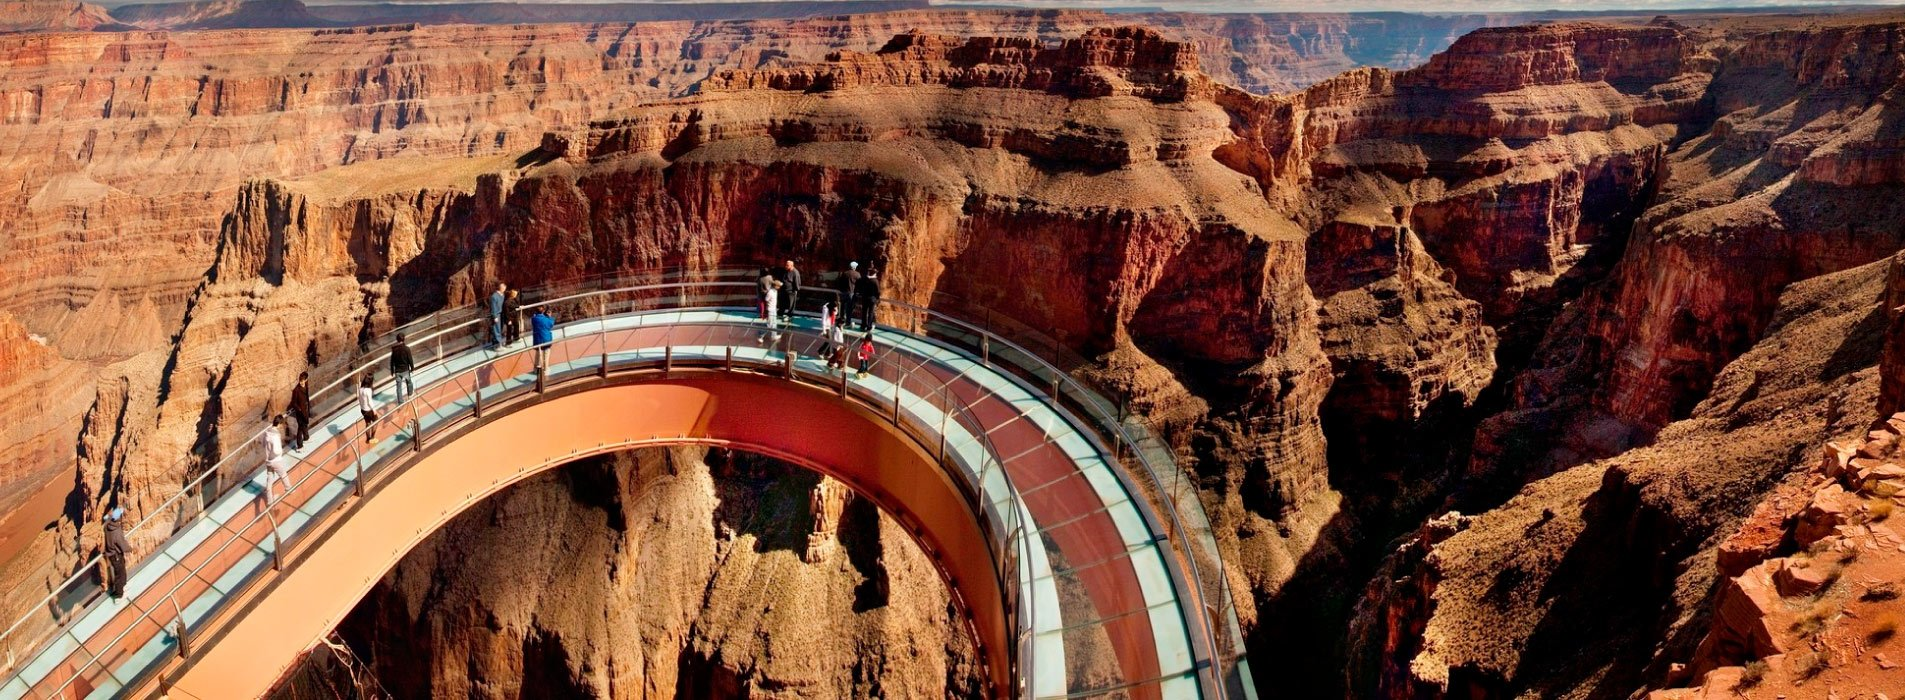 Ospiti che camminano sul ponte di vetro Skywalk nel margine occidentale del Grand Canyon